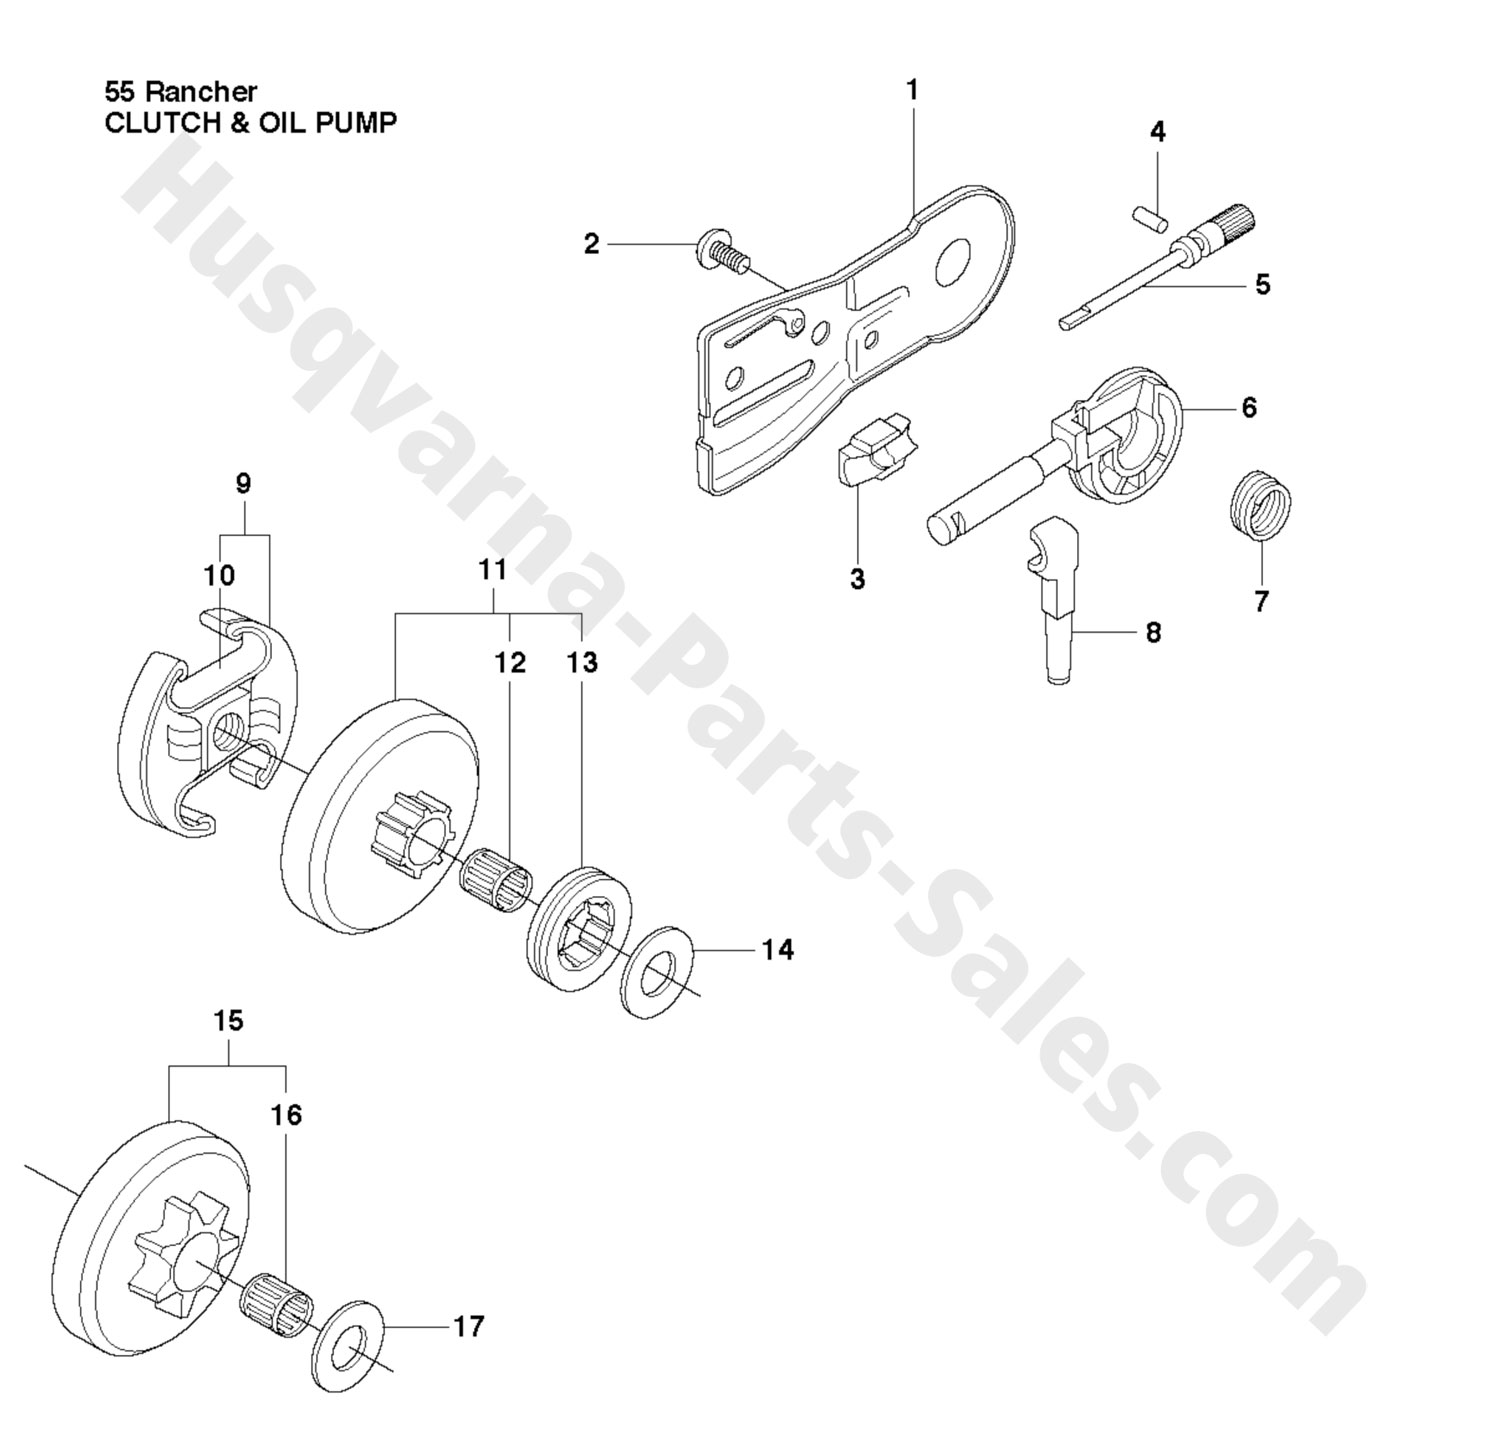 55 Rancher Husqvarna Chain Saw Clutch & Oil Pump Parts